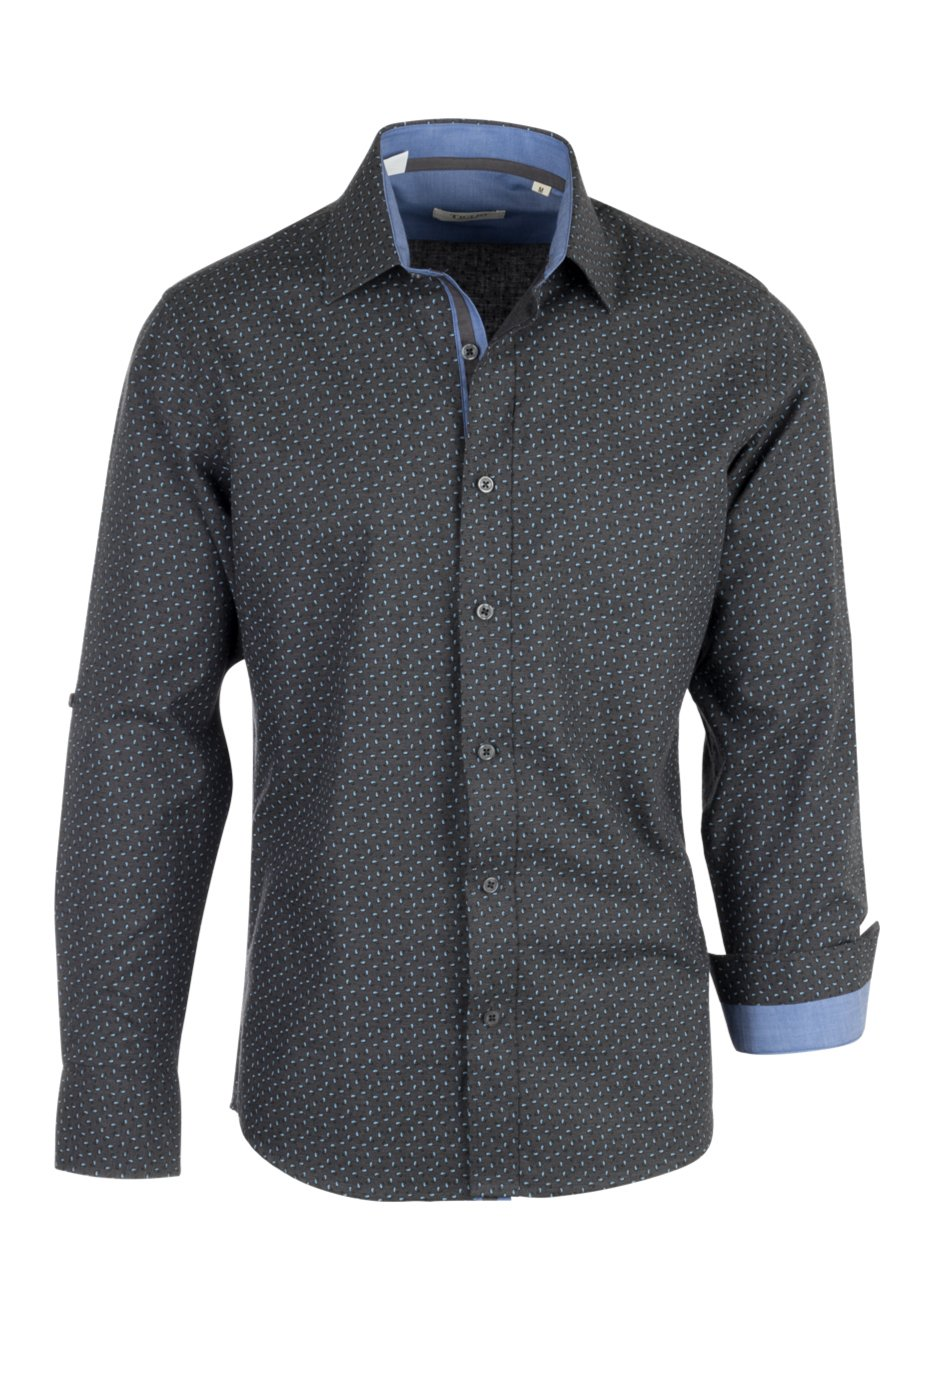 Tiglio Sport Dark Gray with Blue Paisley Pattern Modern Fit Sport Shirt V-90800